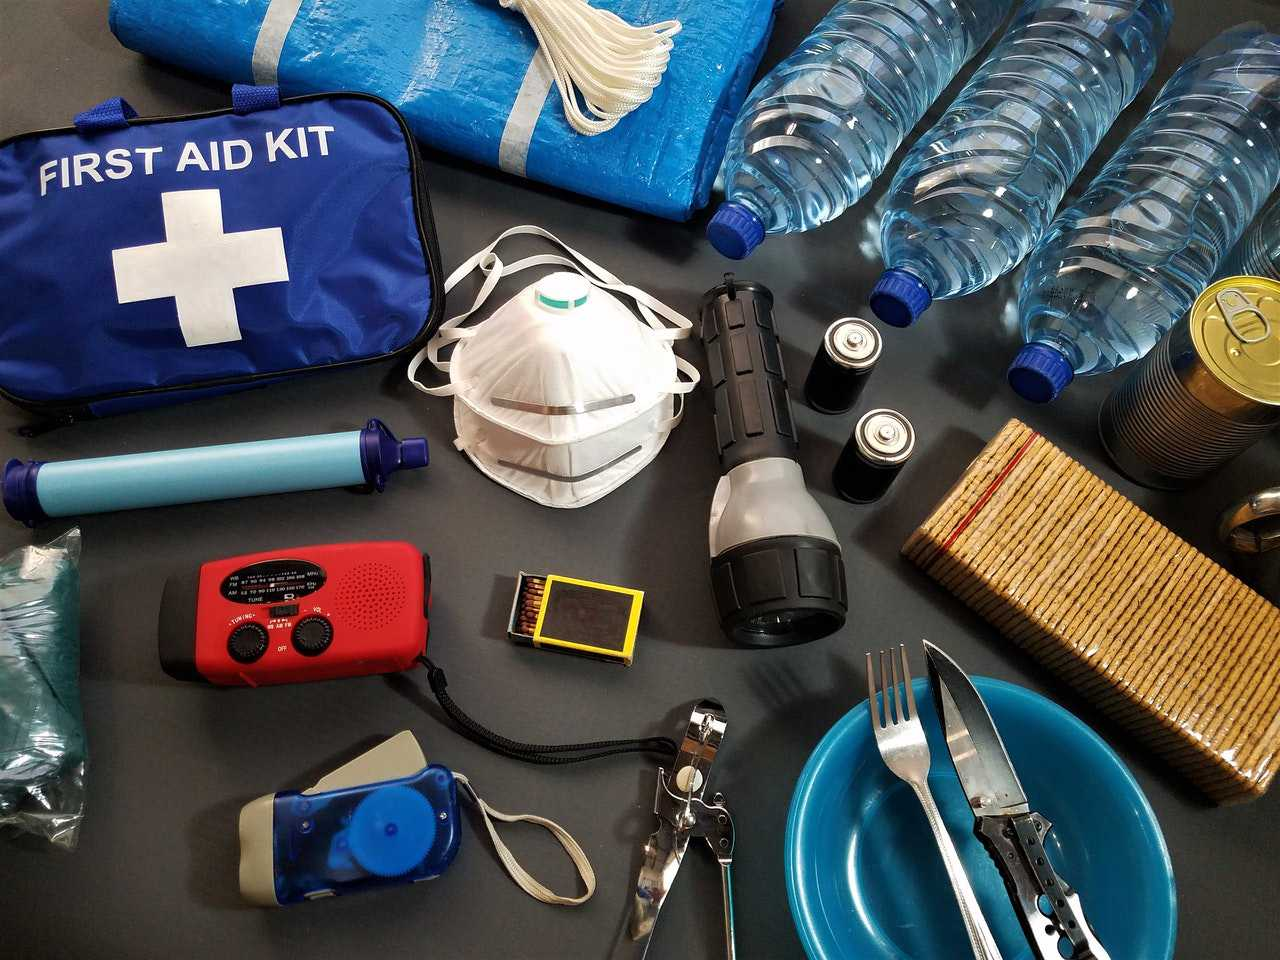 First Aid Kit for Emergency | Goodwill Car Donations